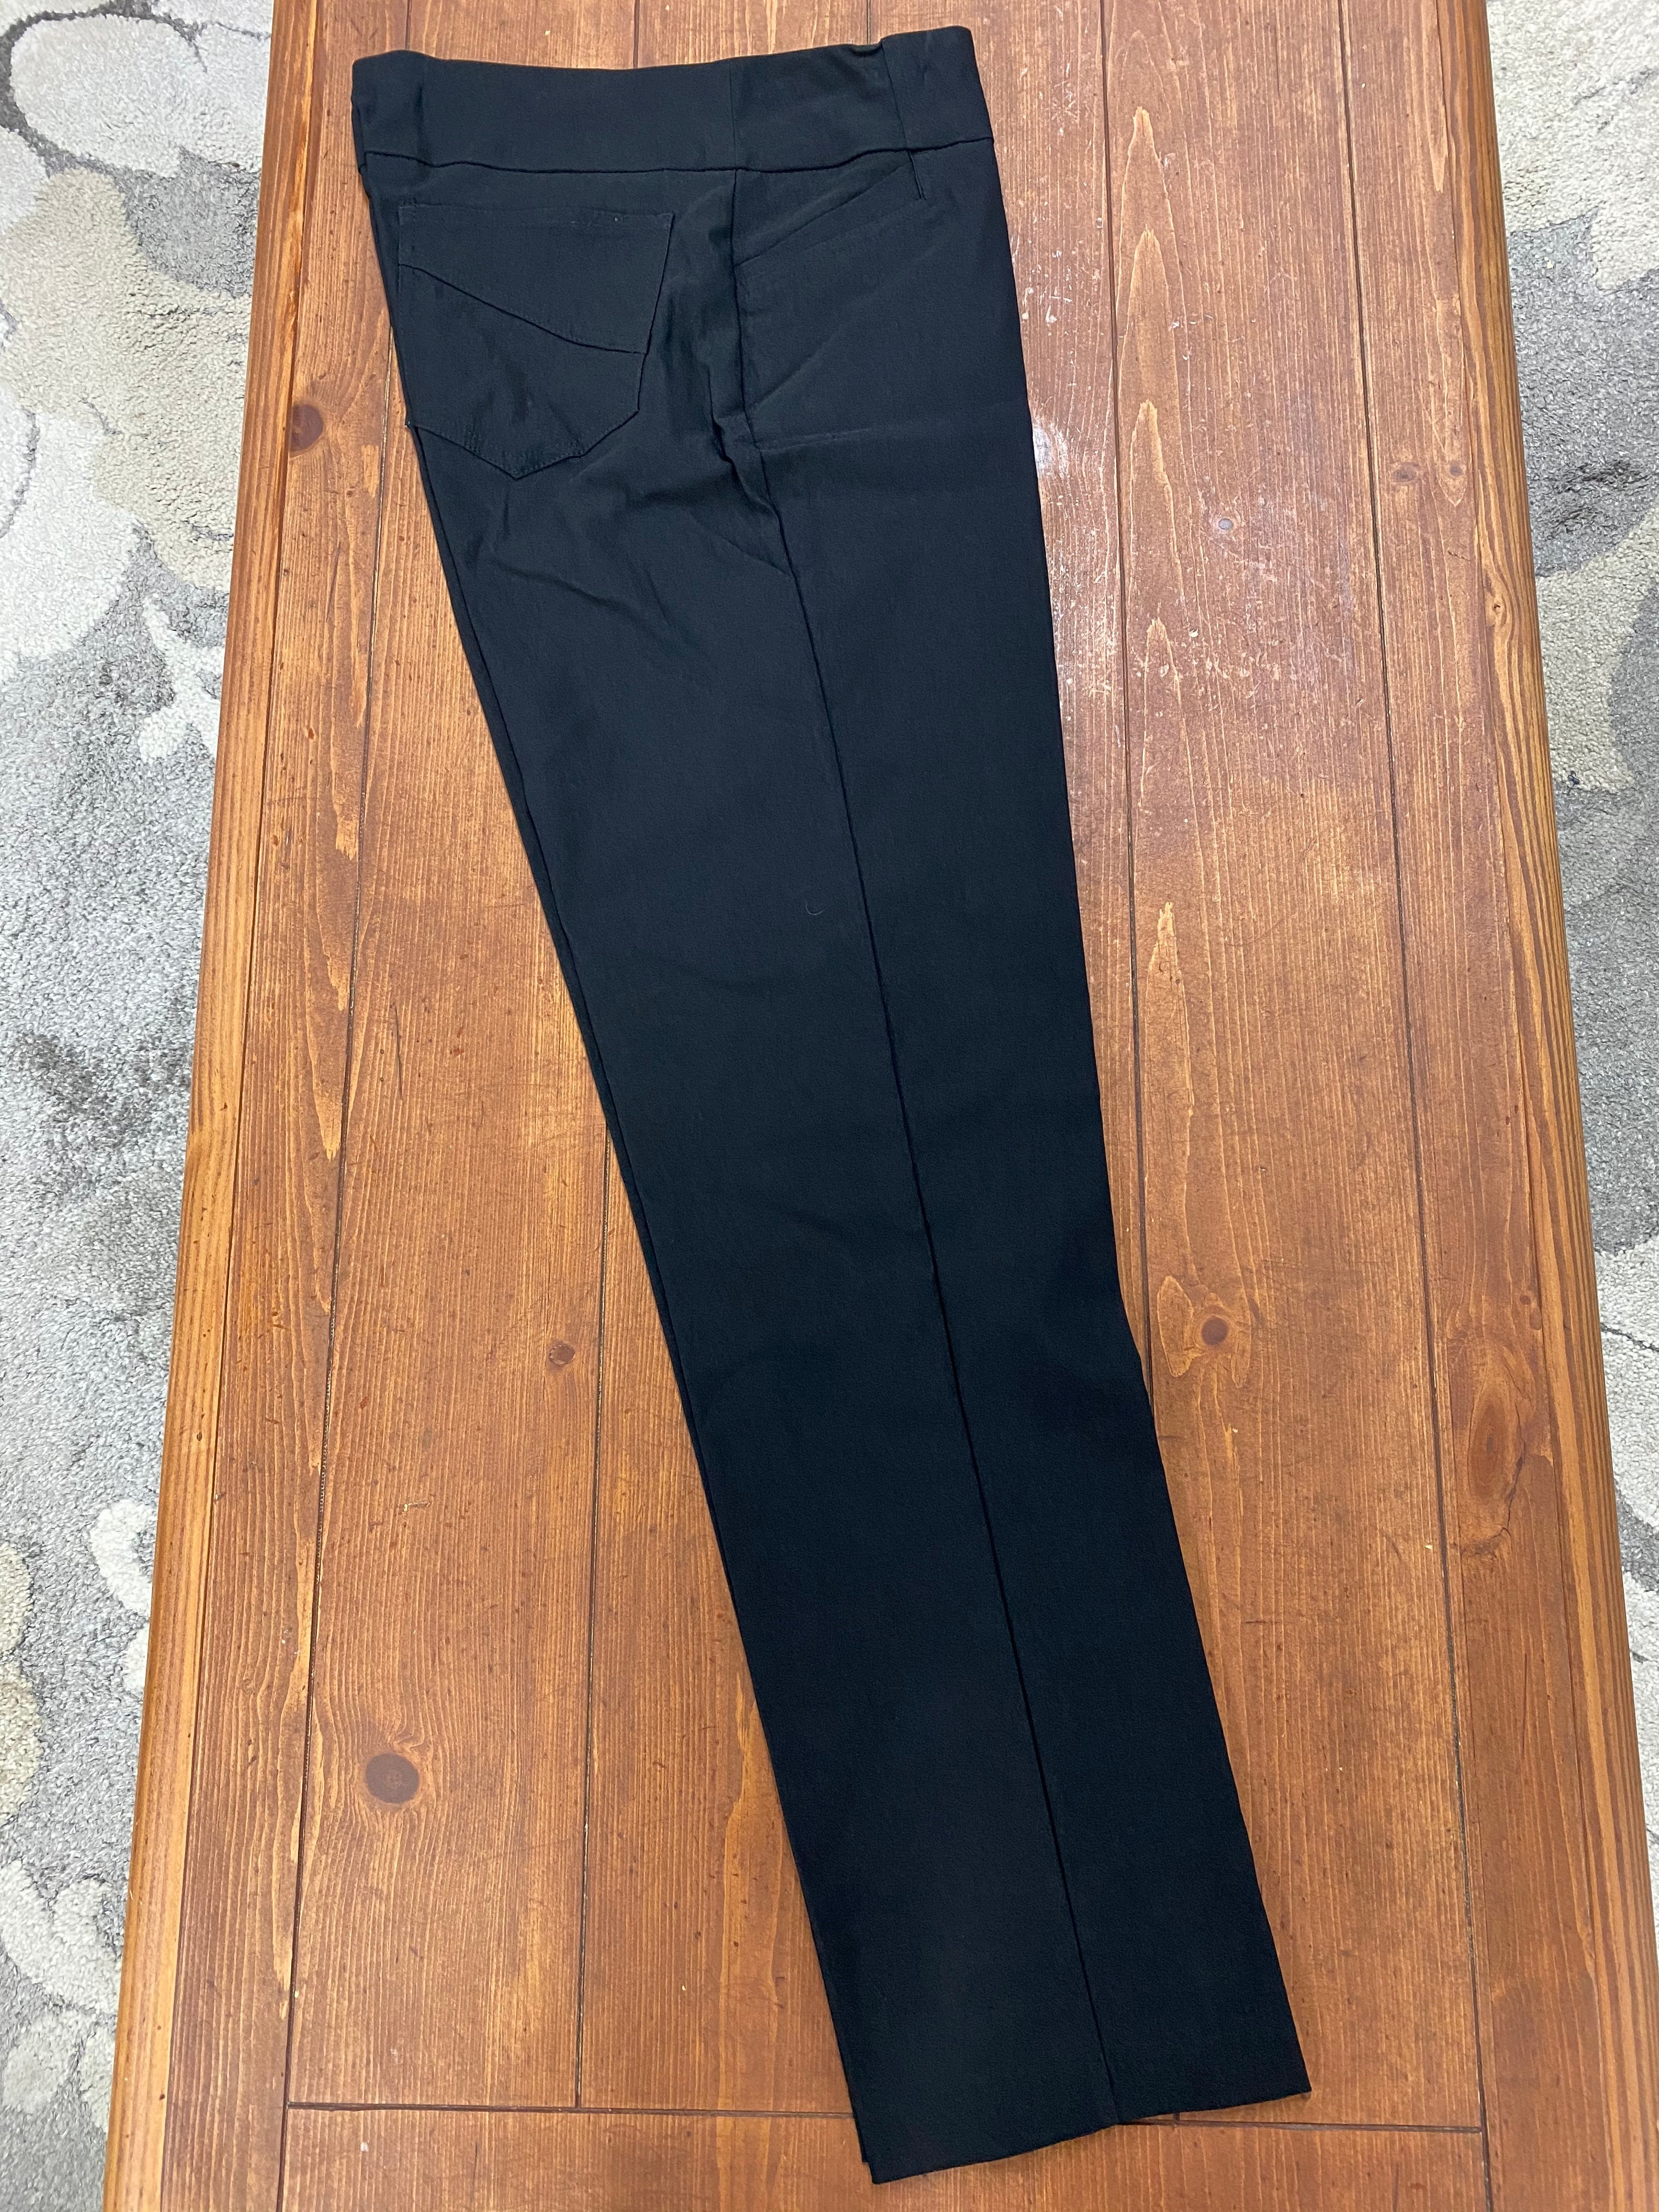 N Touch Black 5 Pocket Pant - Whitt & Co. Clothing